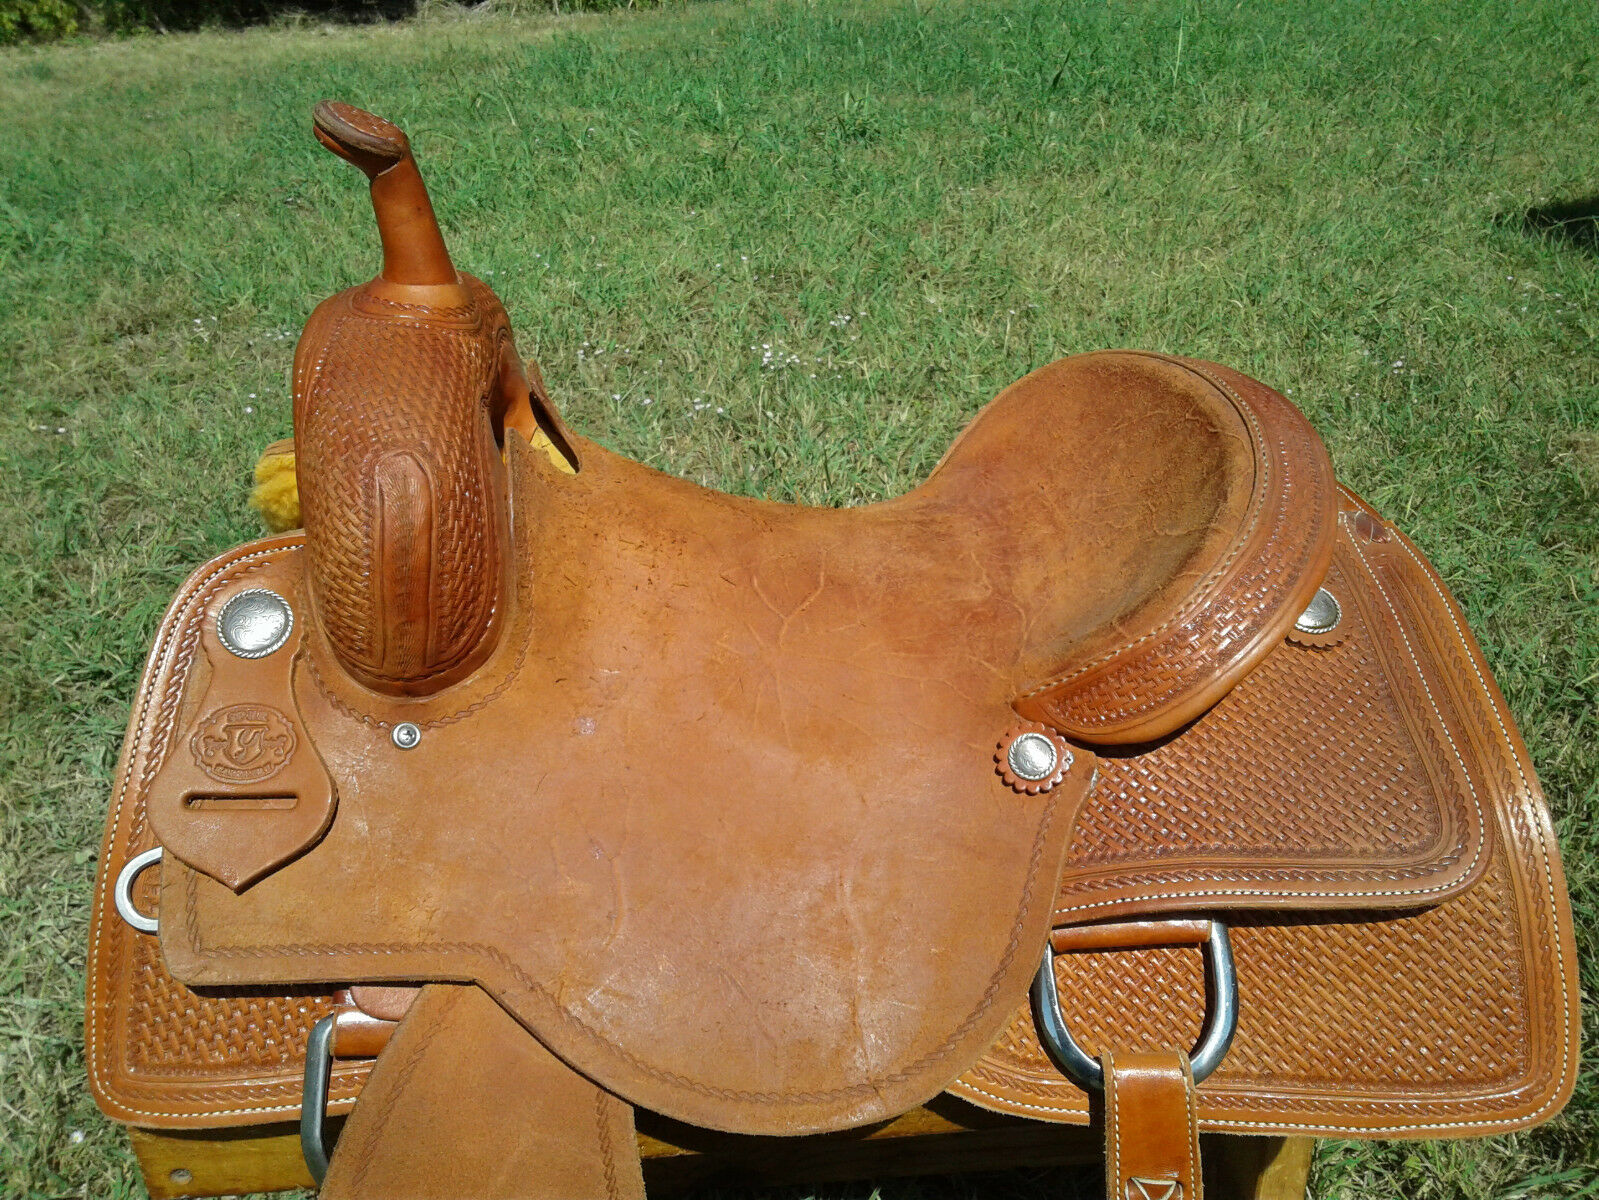 16  Spur Saddlery  Cutting Saddle - Lewis Tree - Made in Texas  hot sports